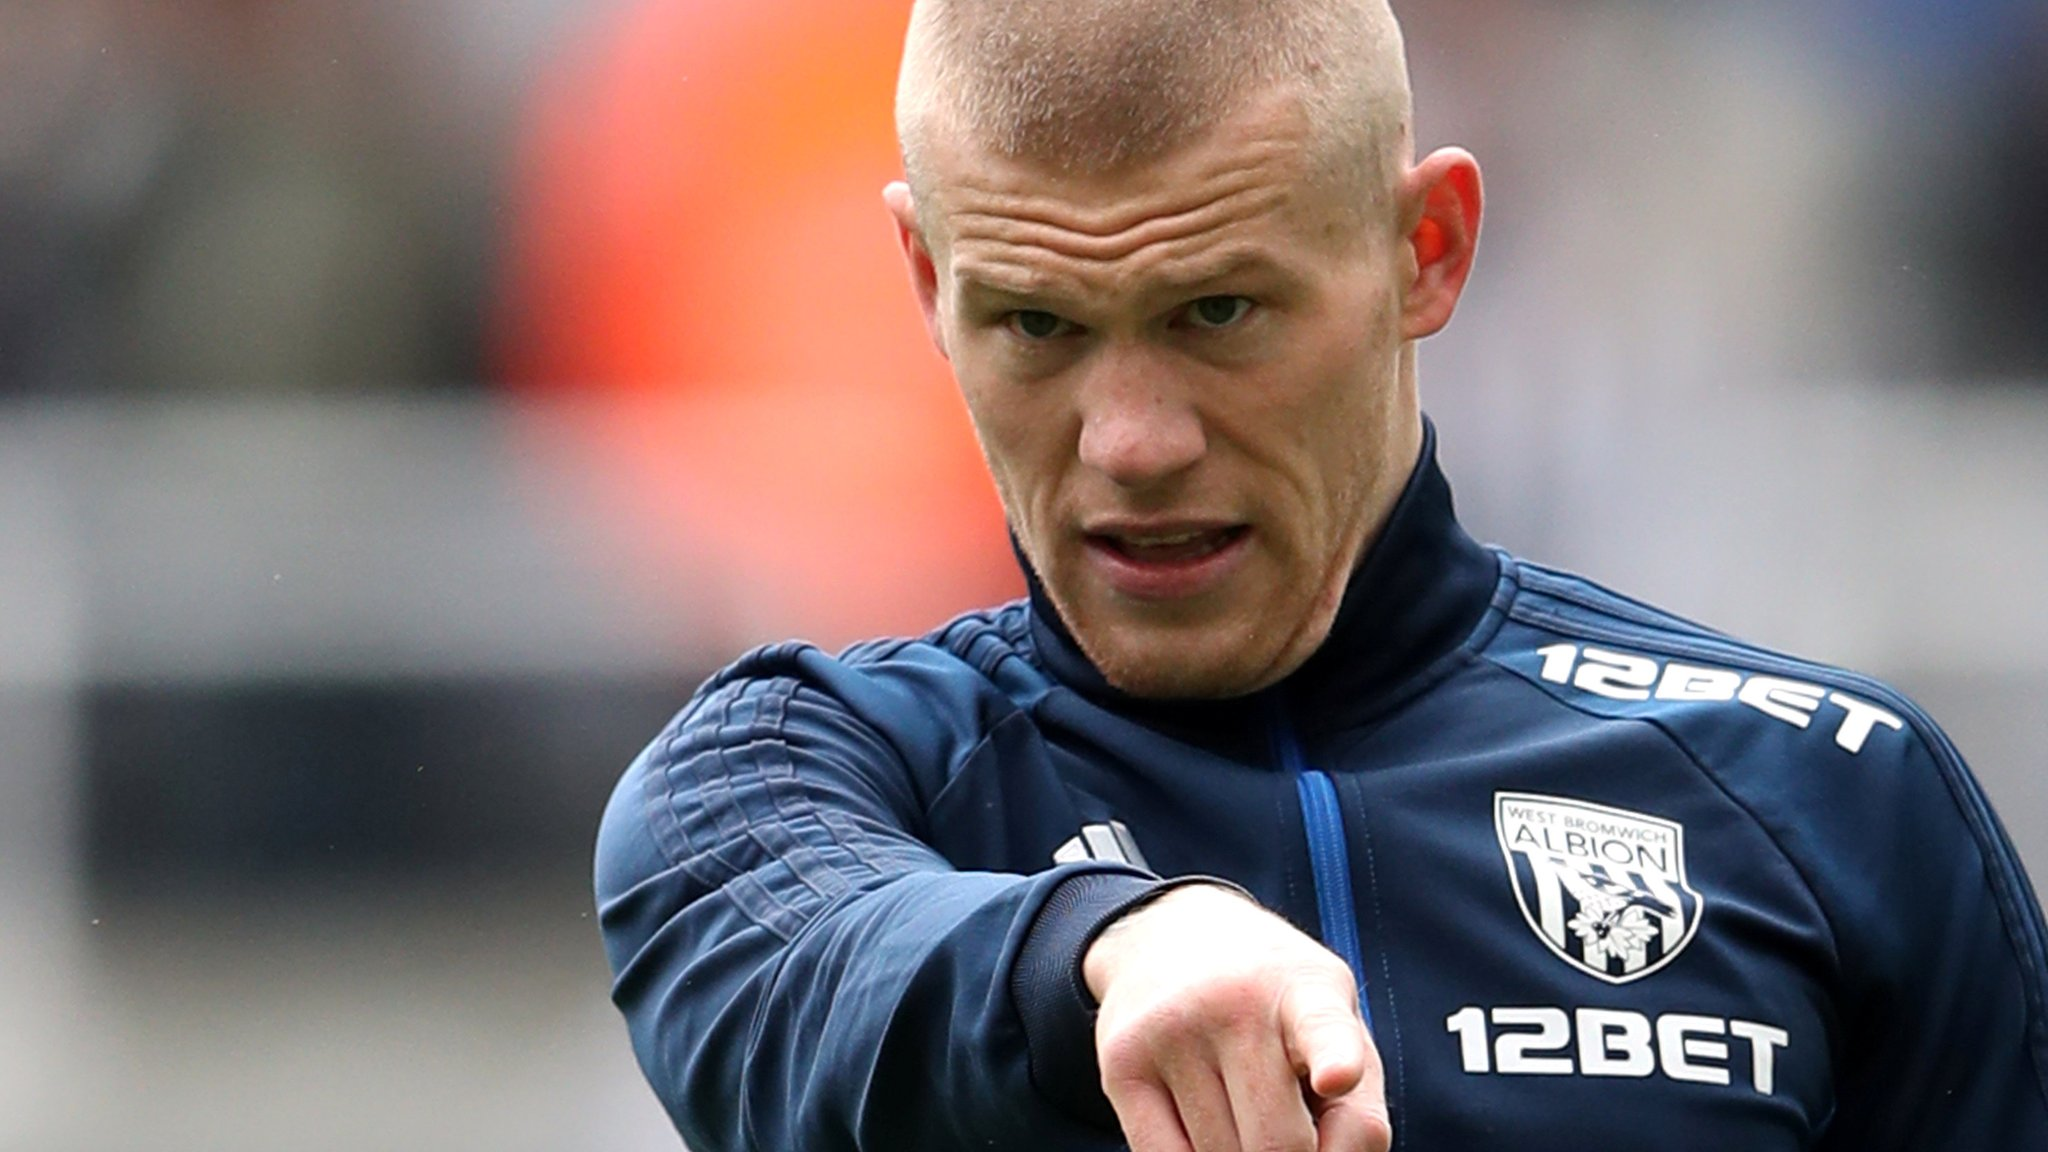 James McClean: Stoke City sign West Bromwich Albion winger for initial £5m